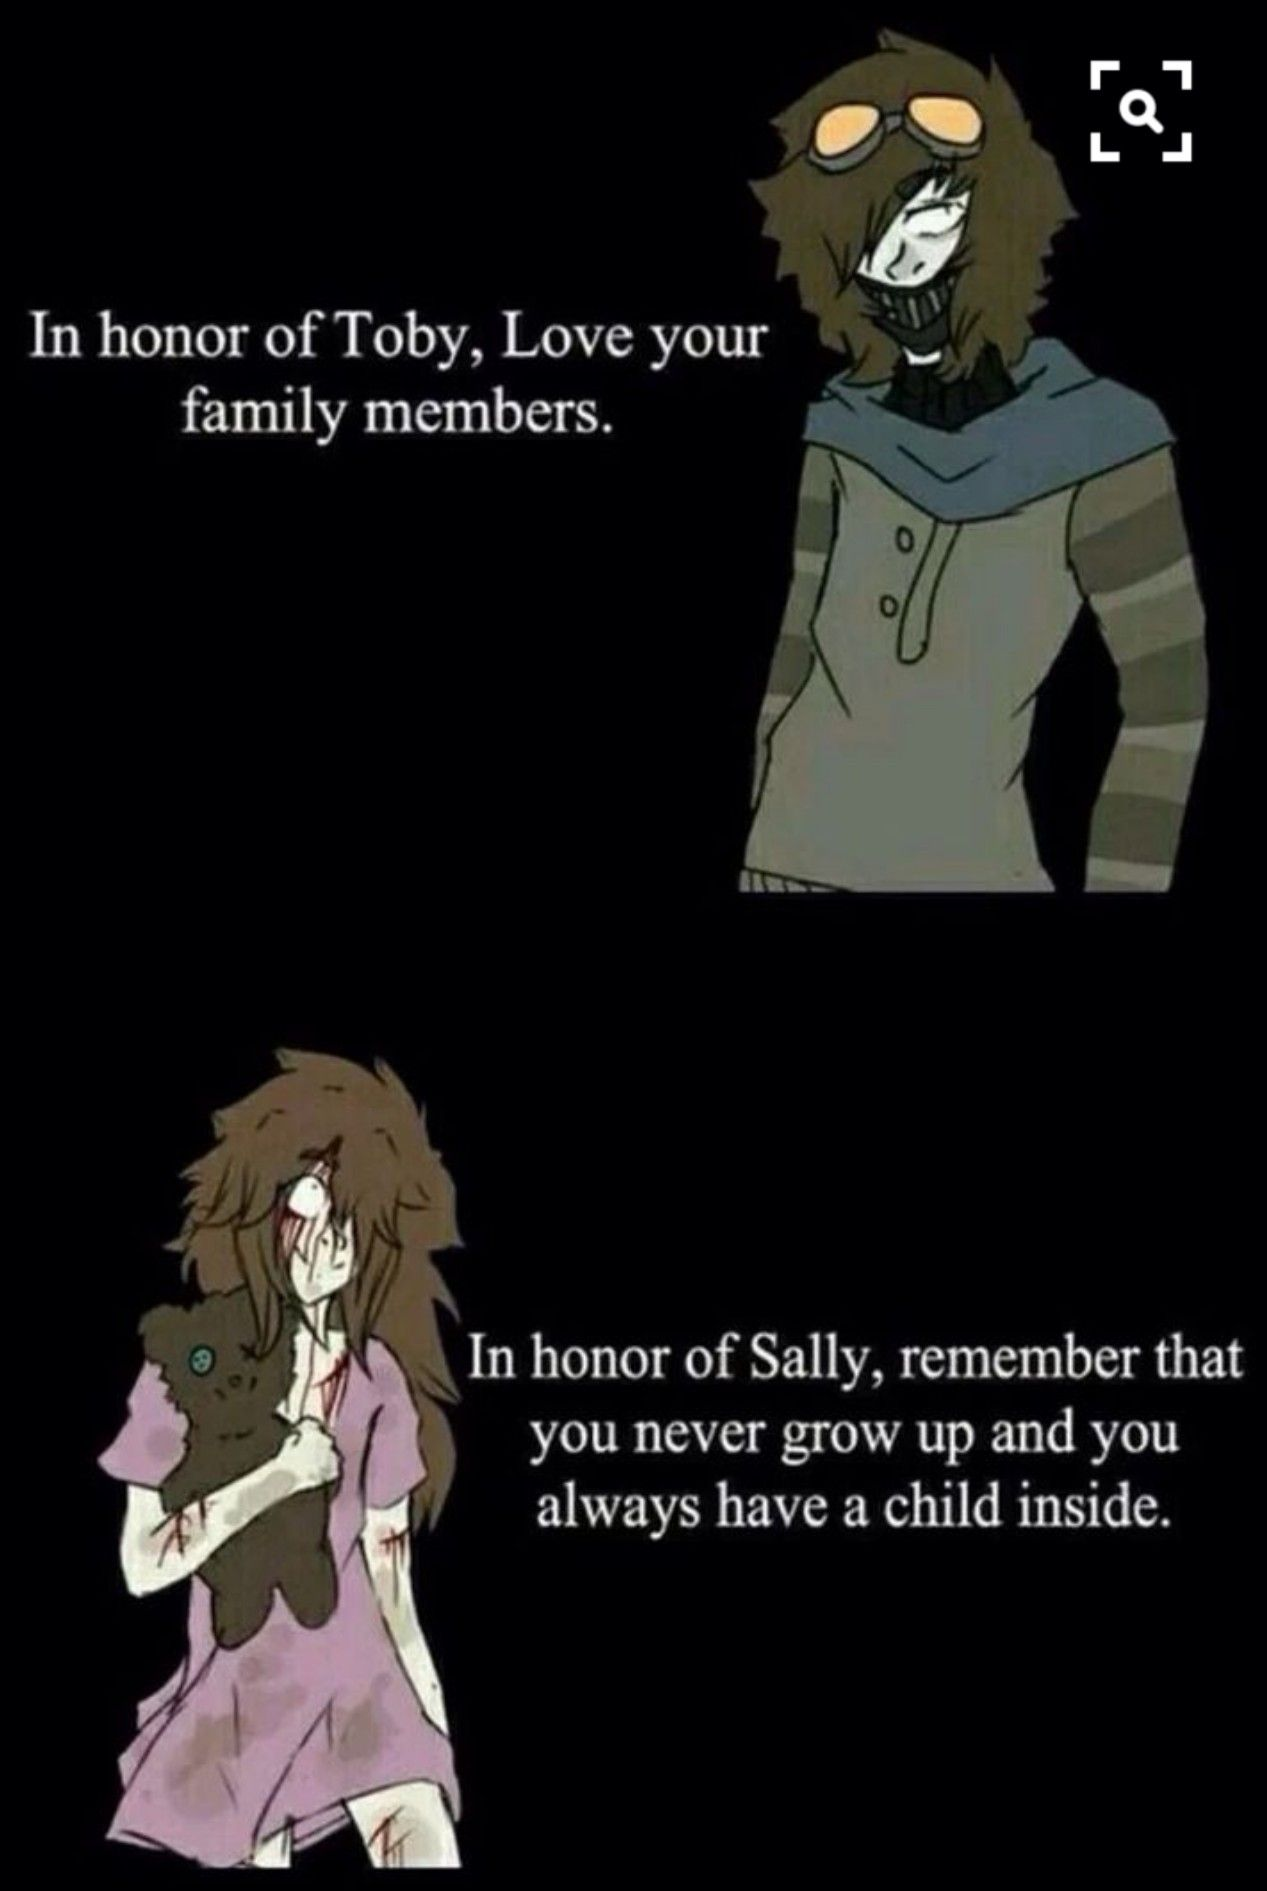 Pin by ping chow on bla Love your family, Creepypasta, Memes